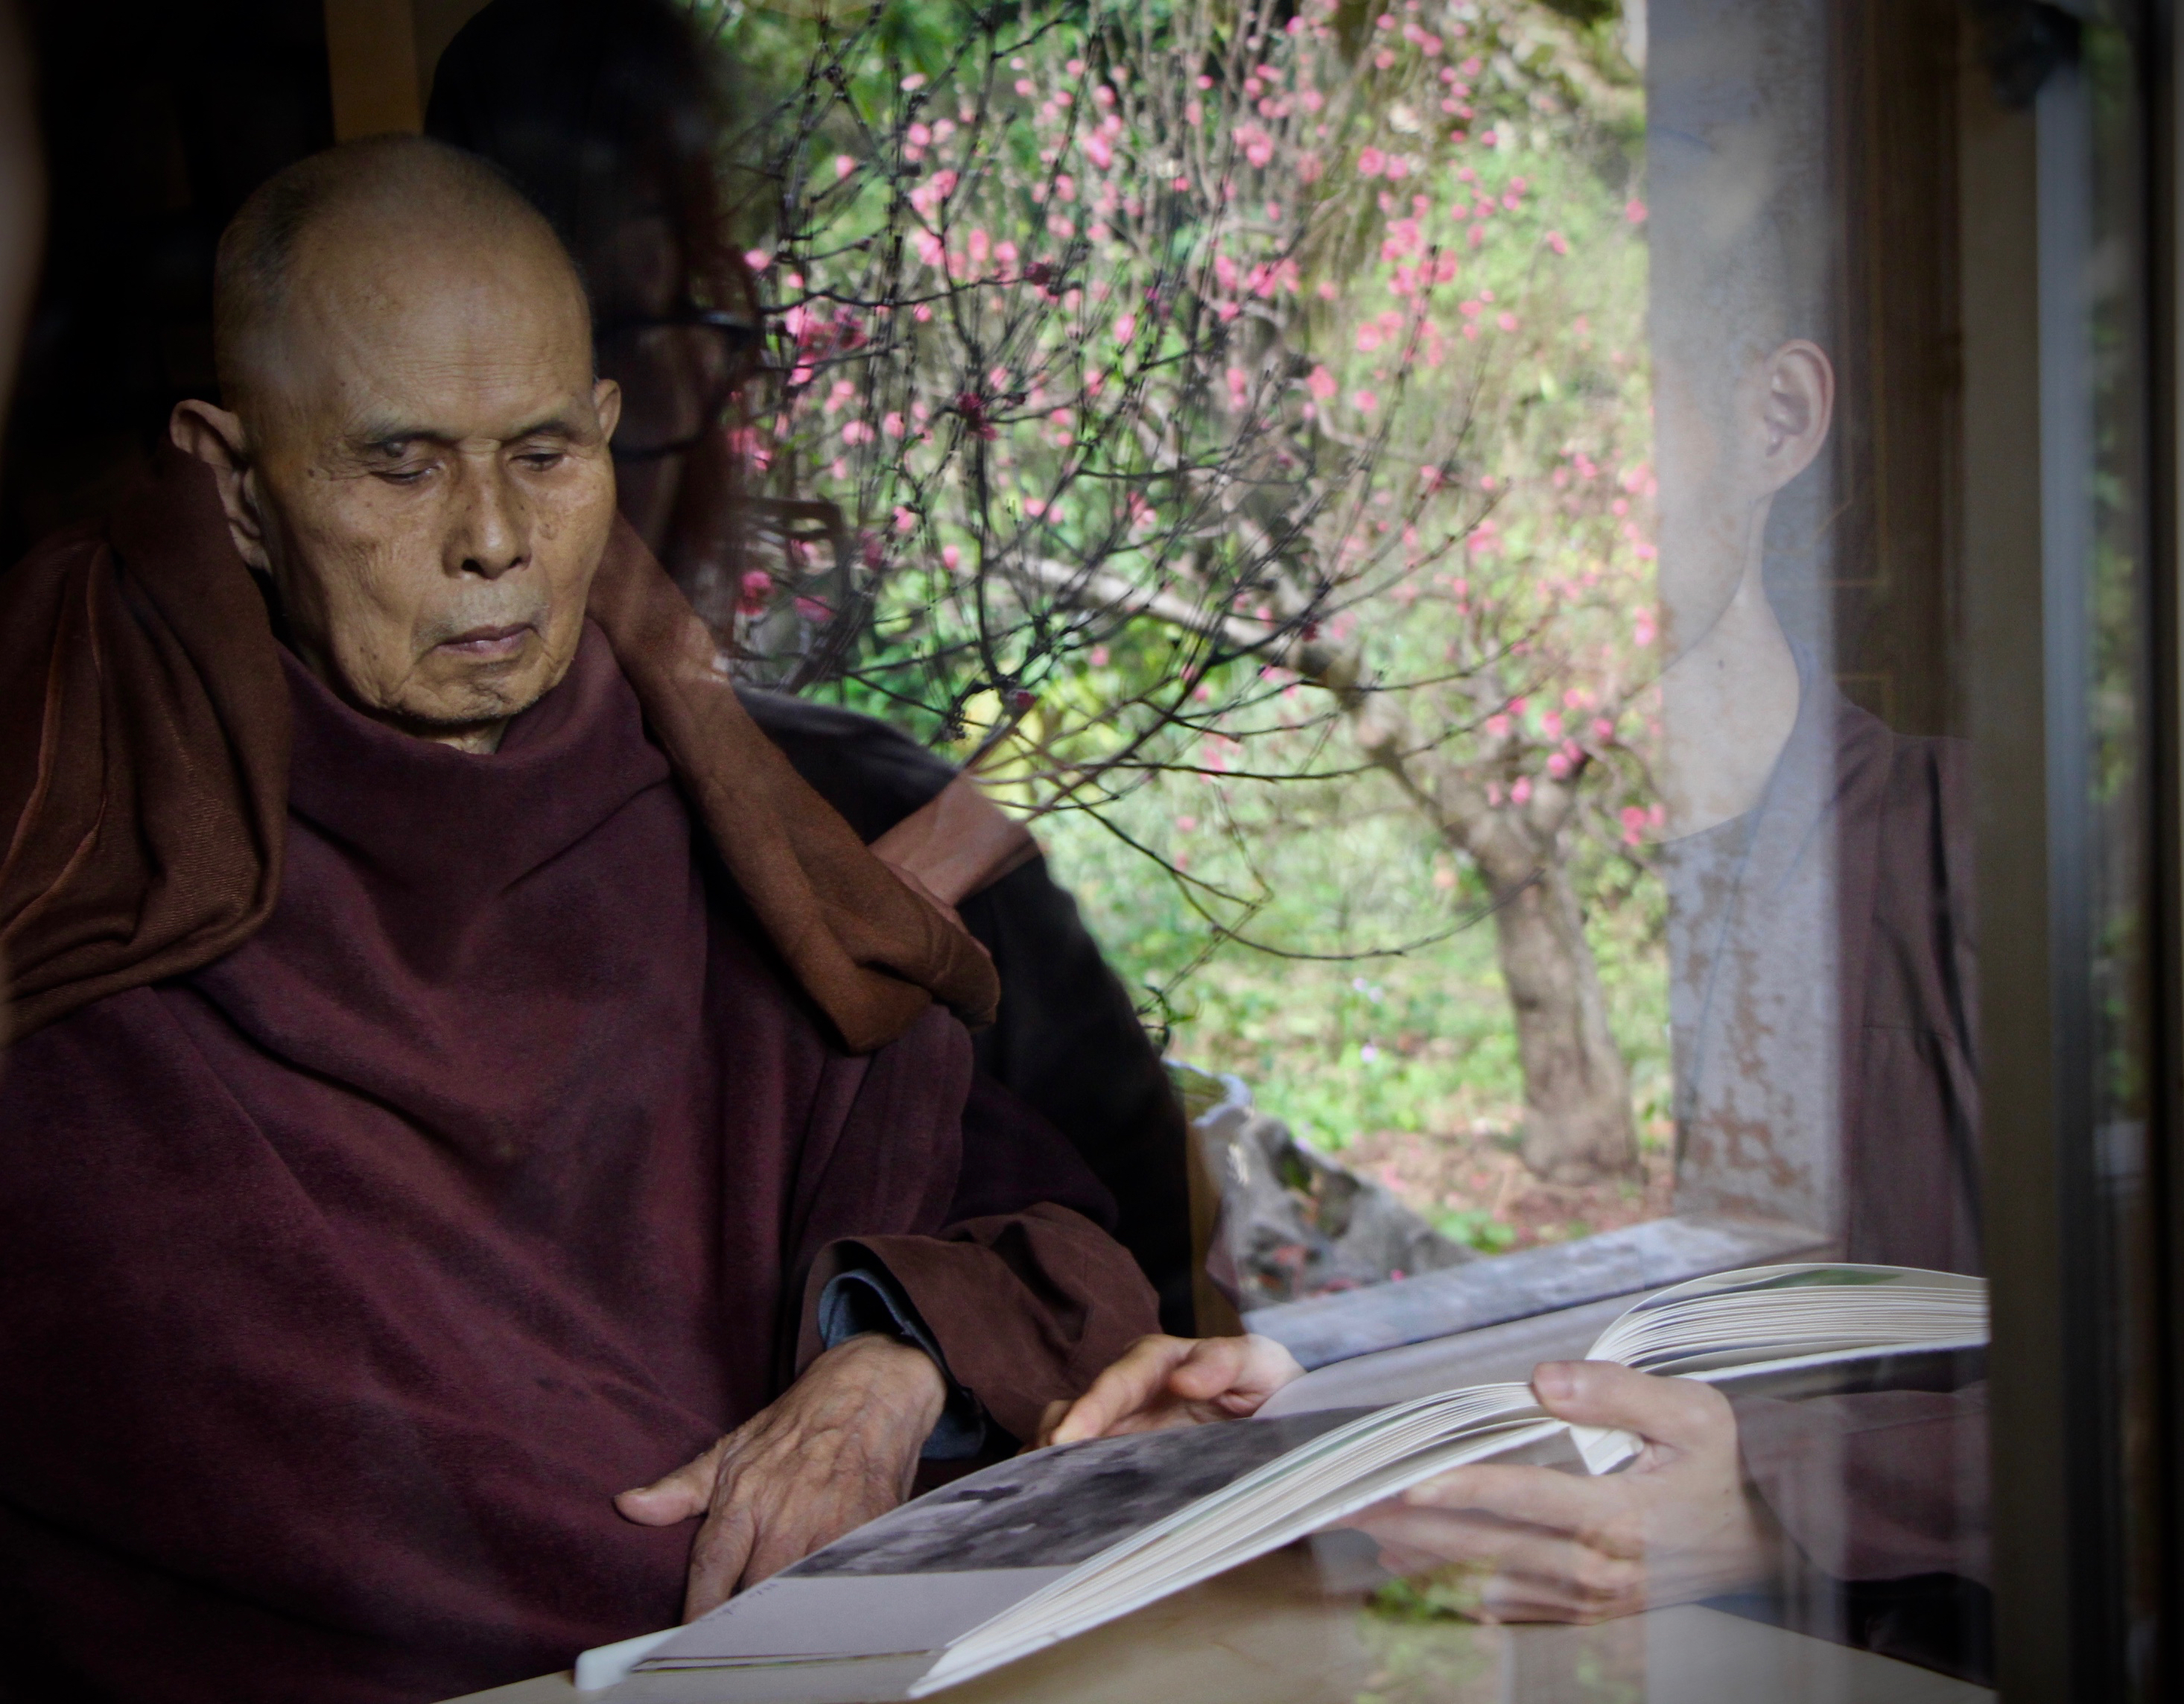 Thich Nhat Hanh's final mindfulness lesson: how to die peacefully